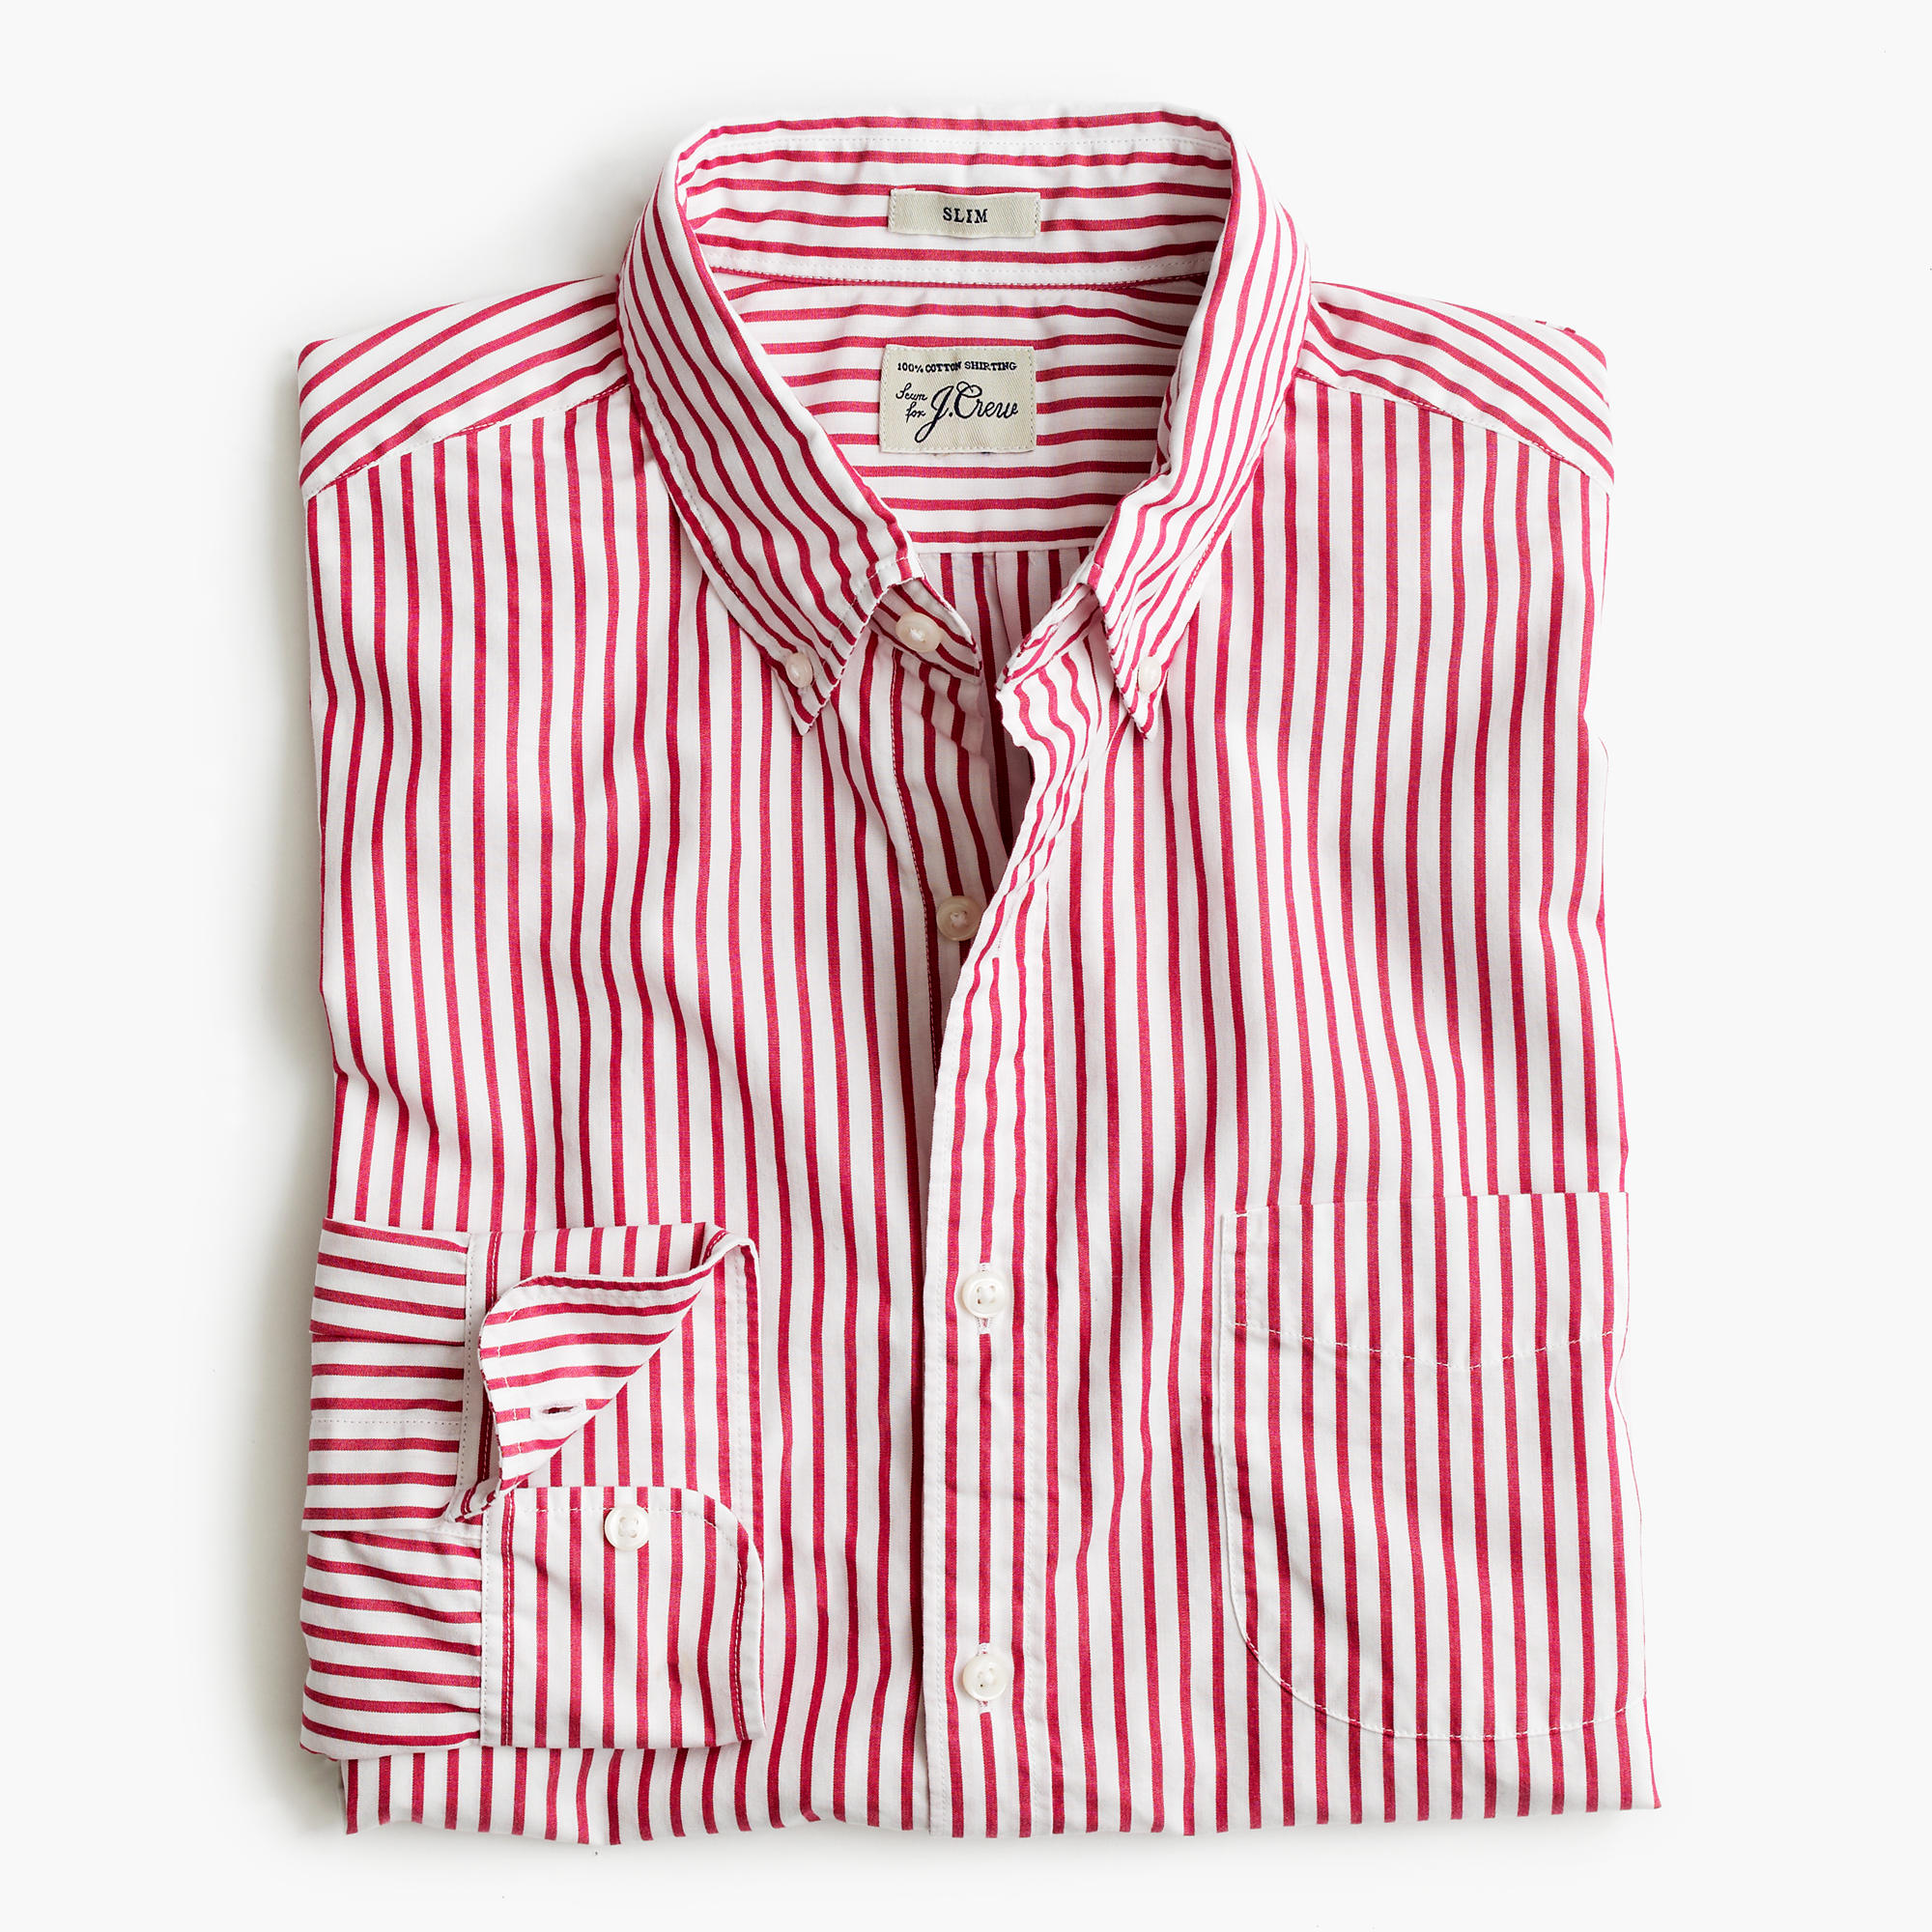 Every time you wash that dress shirt, you've got only so many more times you're going to be able to wash it before it falls apart or becomes unwearable. I like to tell guys think that you can wash this dress shirt only times.